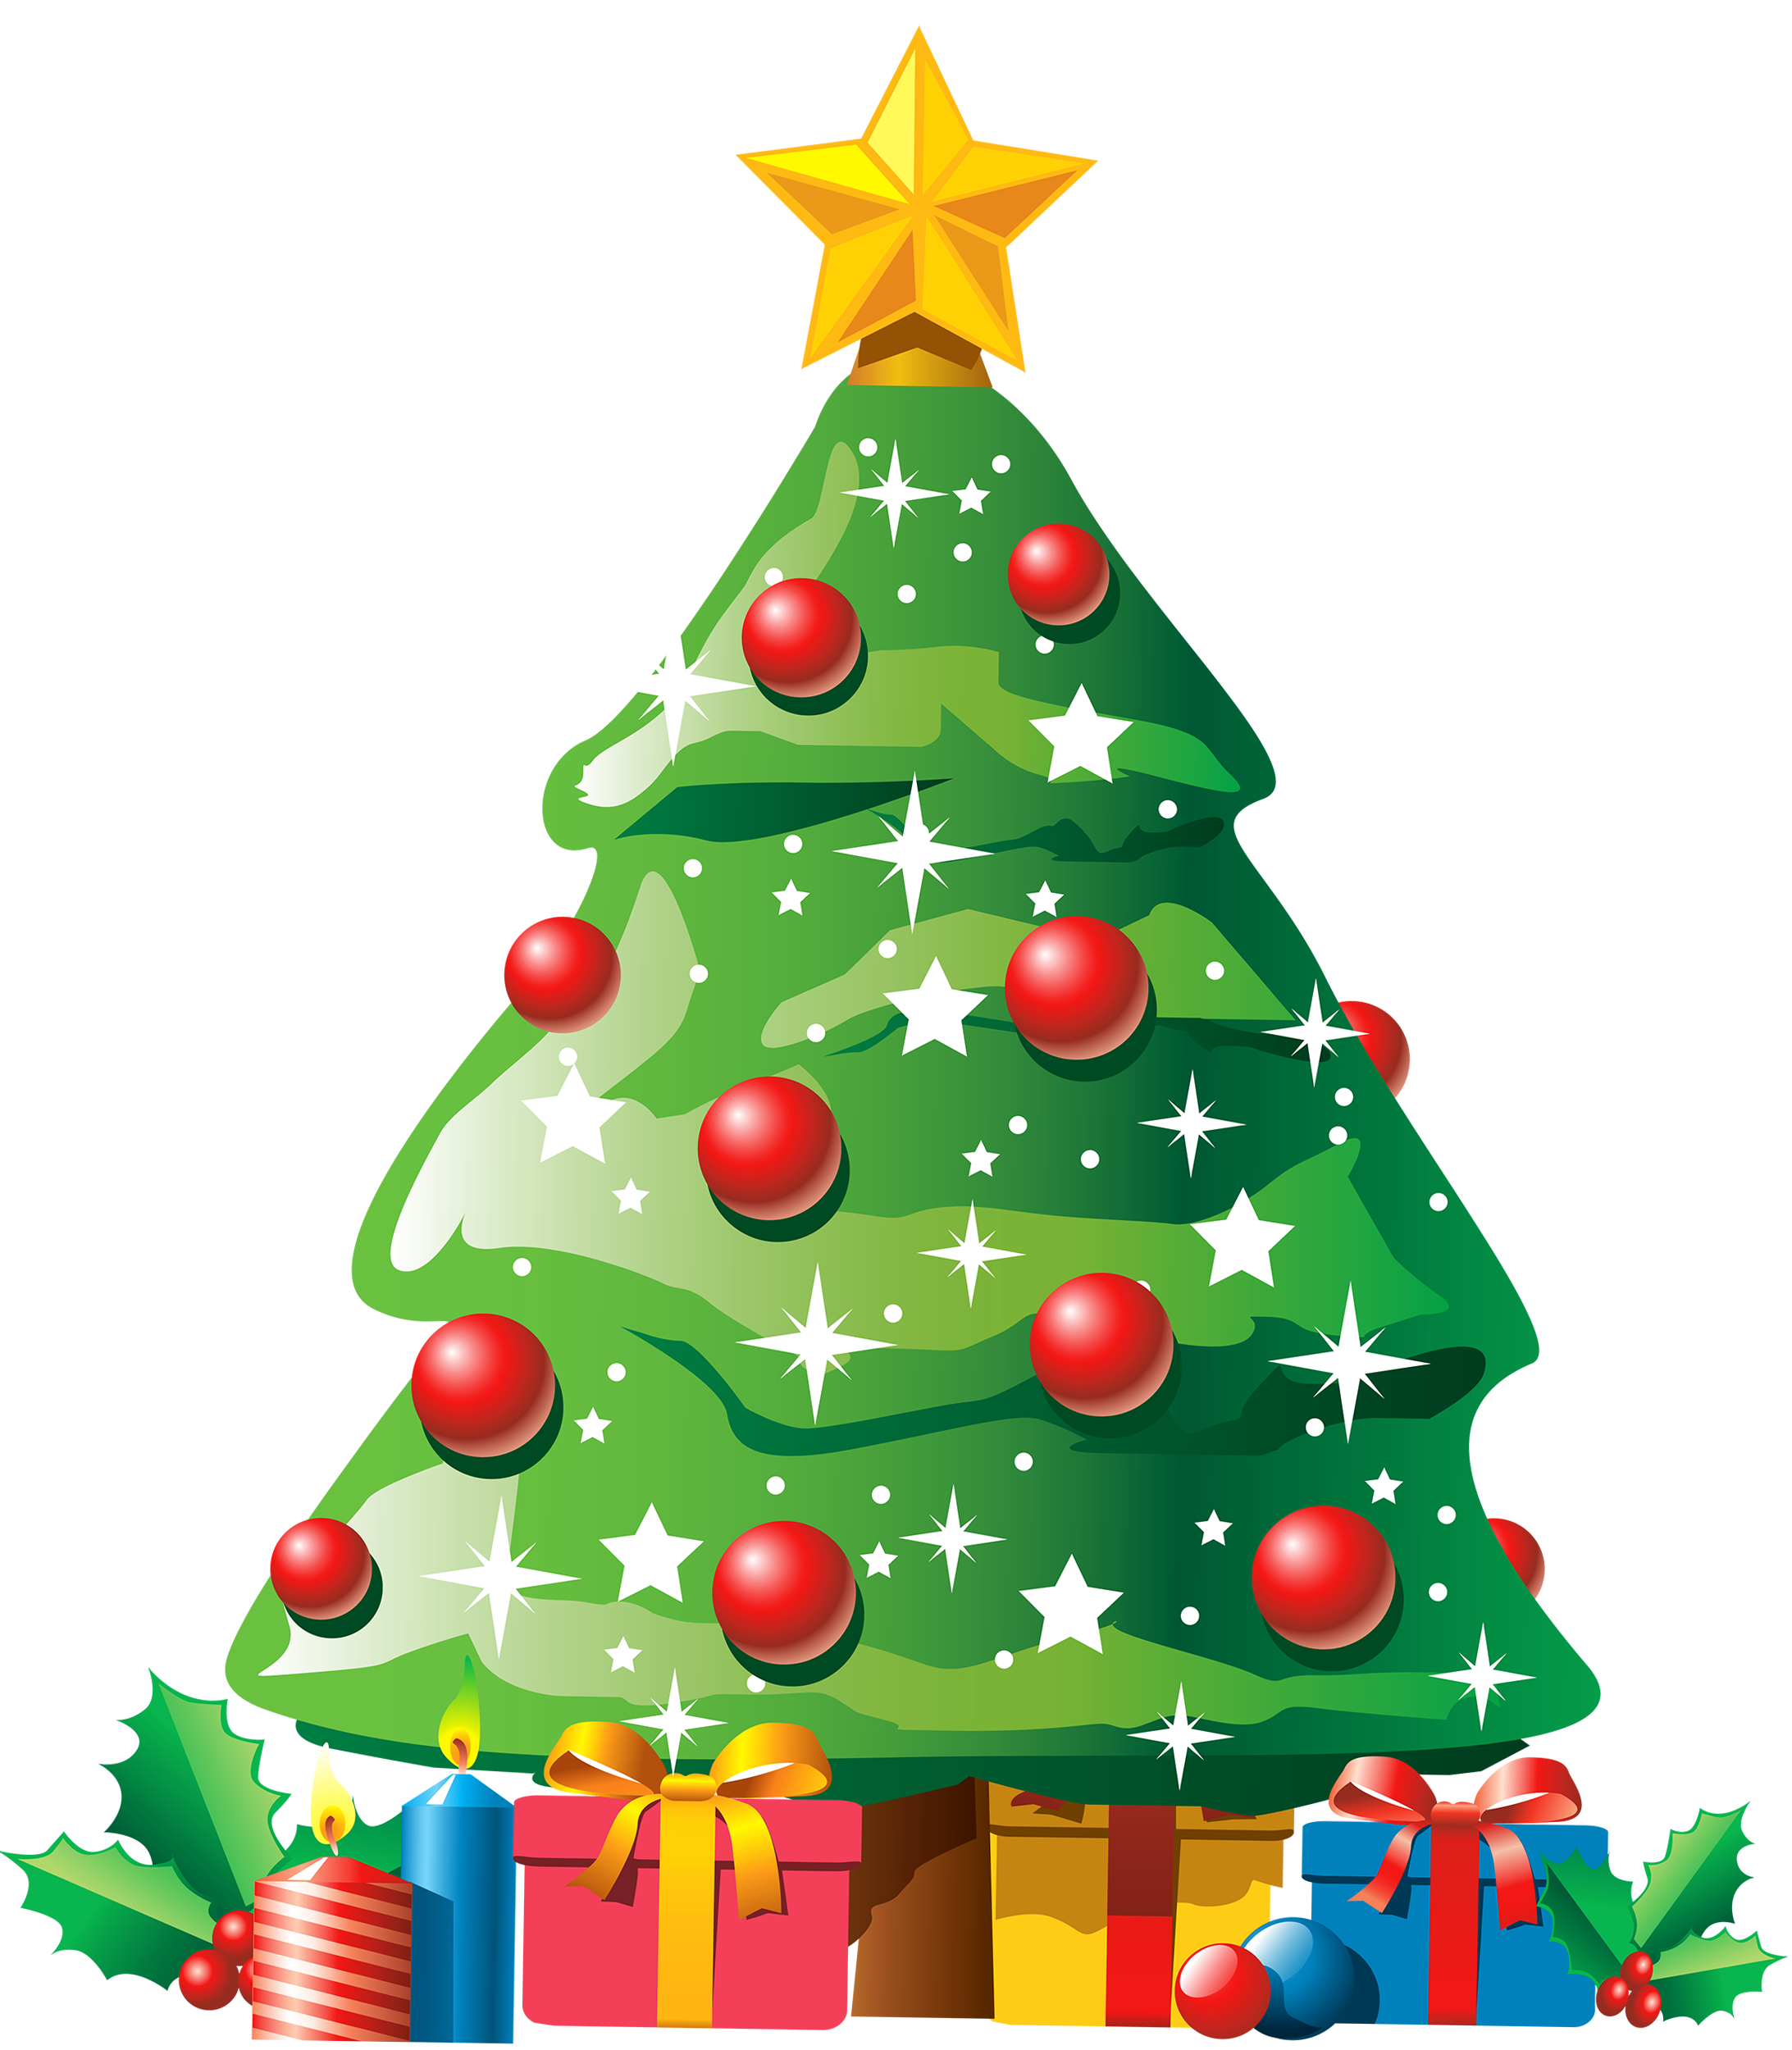 Christmas Images Clipart.Christmas Tree Clip Art Png Free Christmas Tree Clip Art